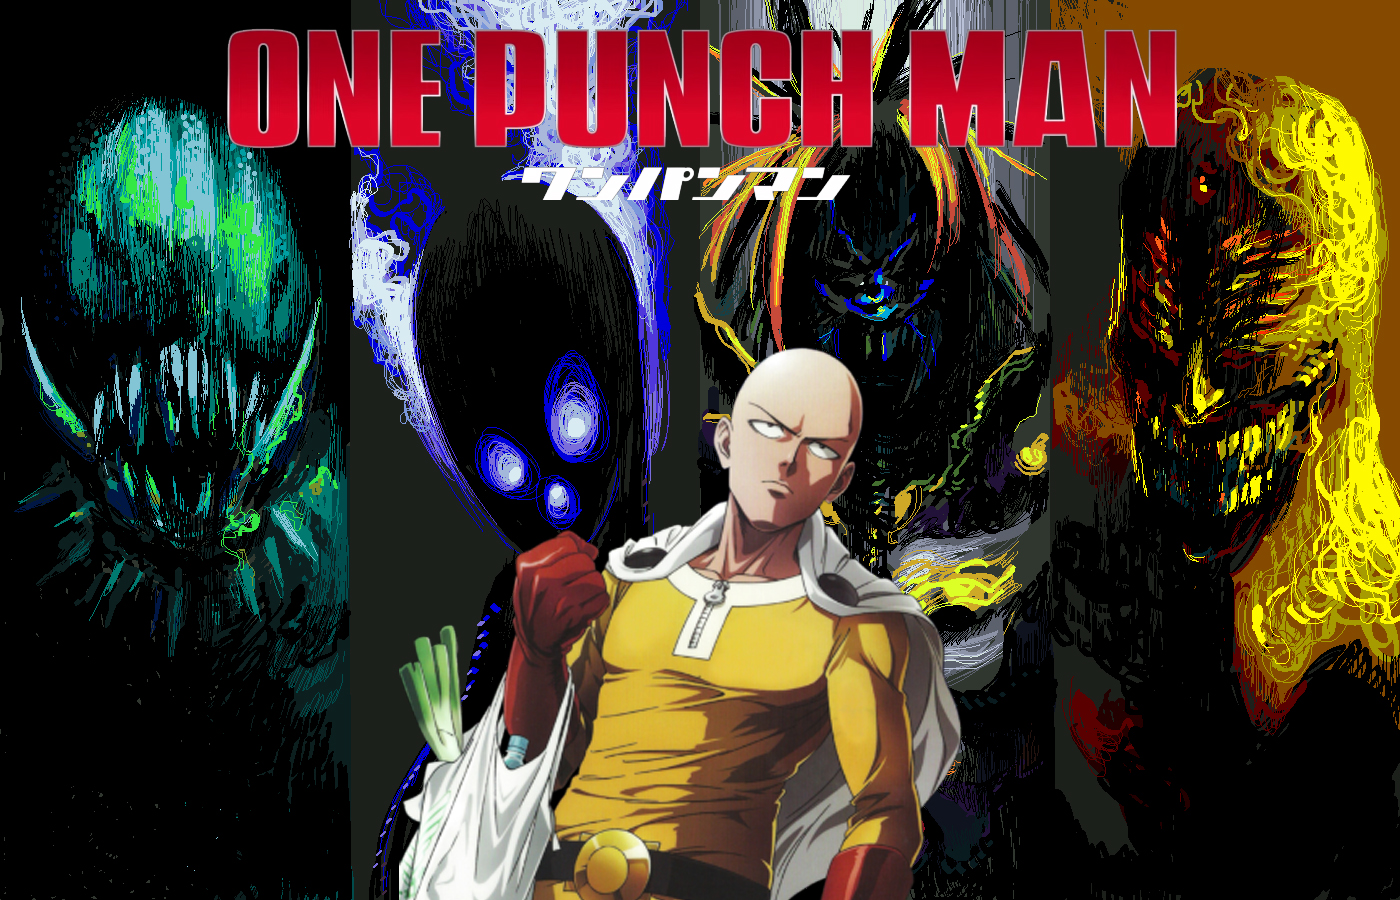 One Punch Man Episode 12 Ger Sub